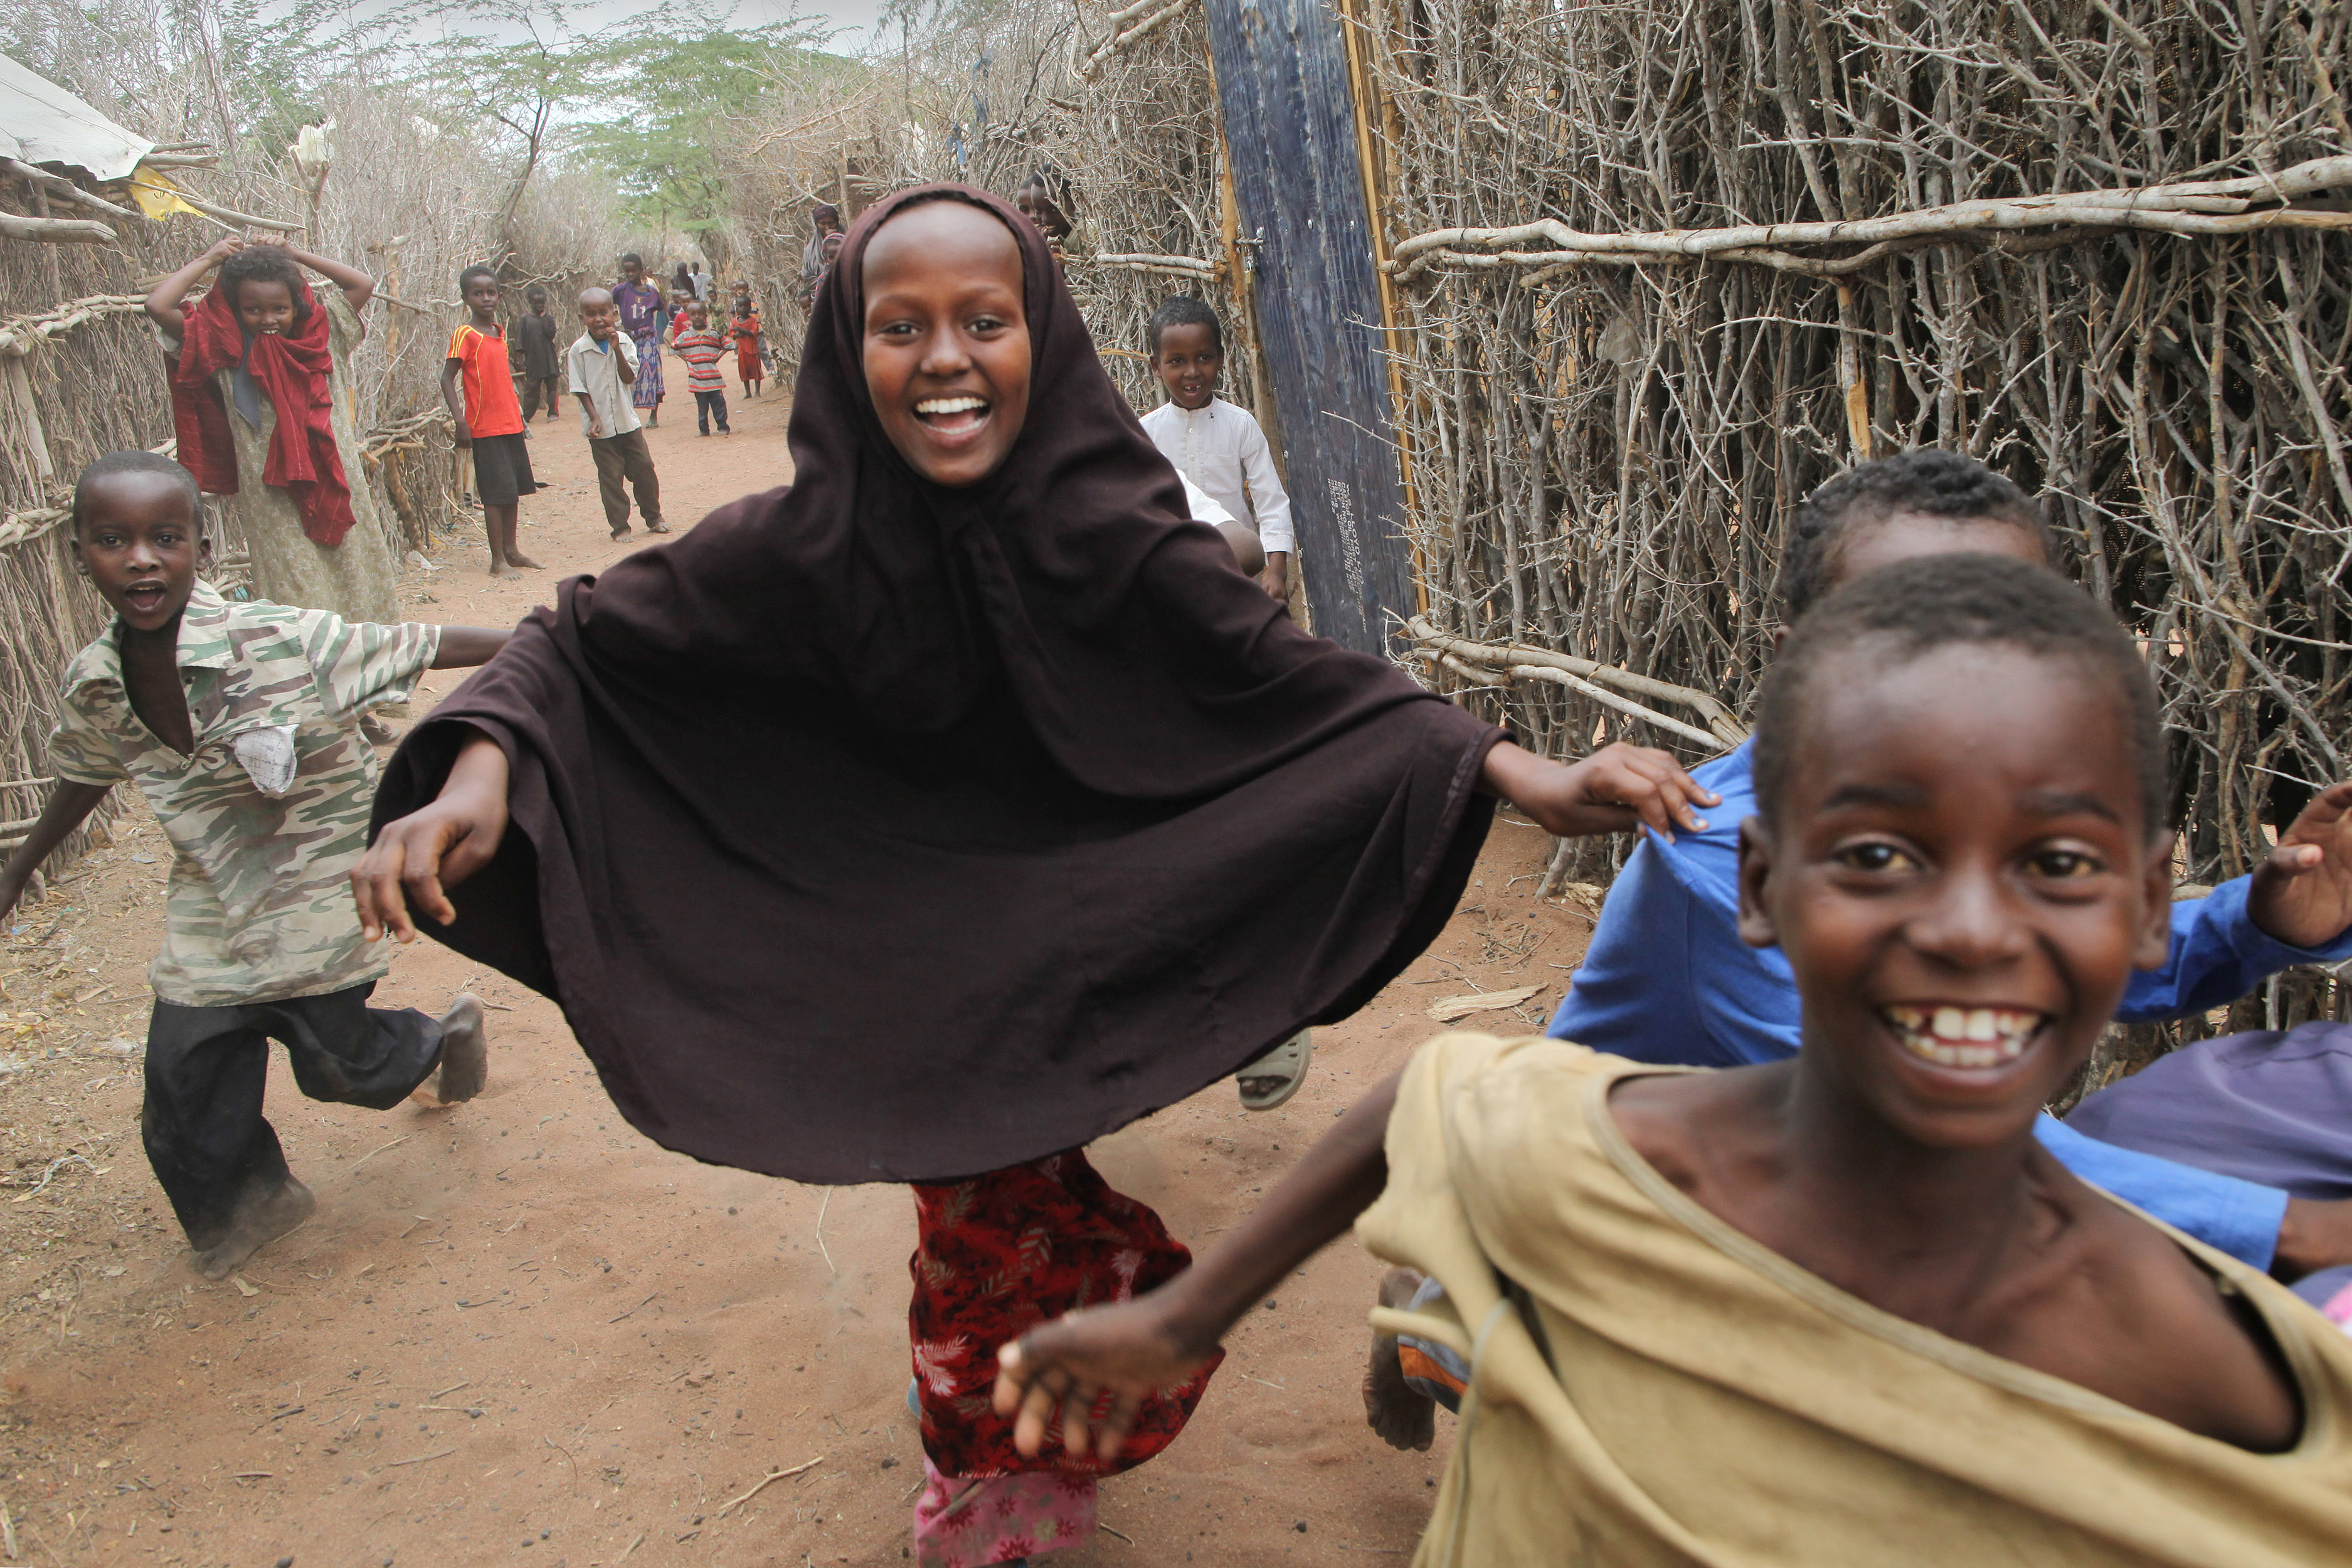 Children running in Dabab refugee camp in Kenya